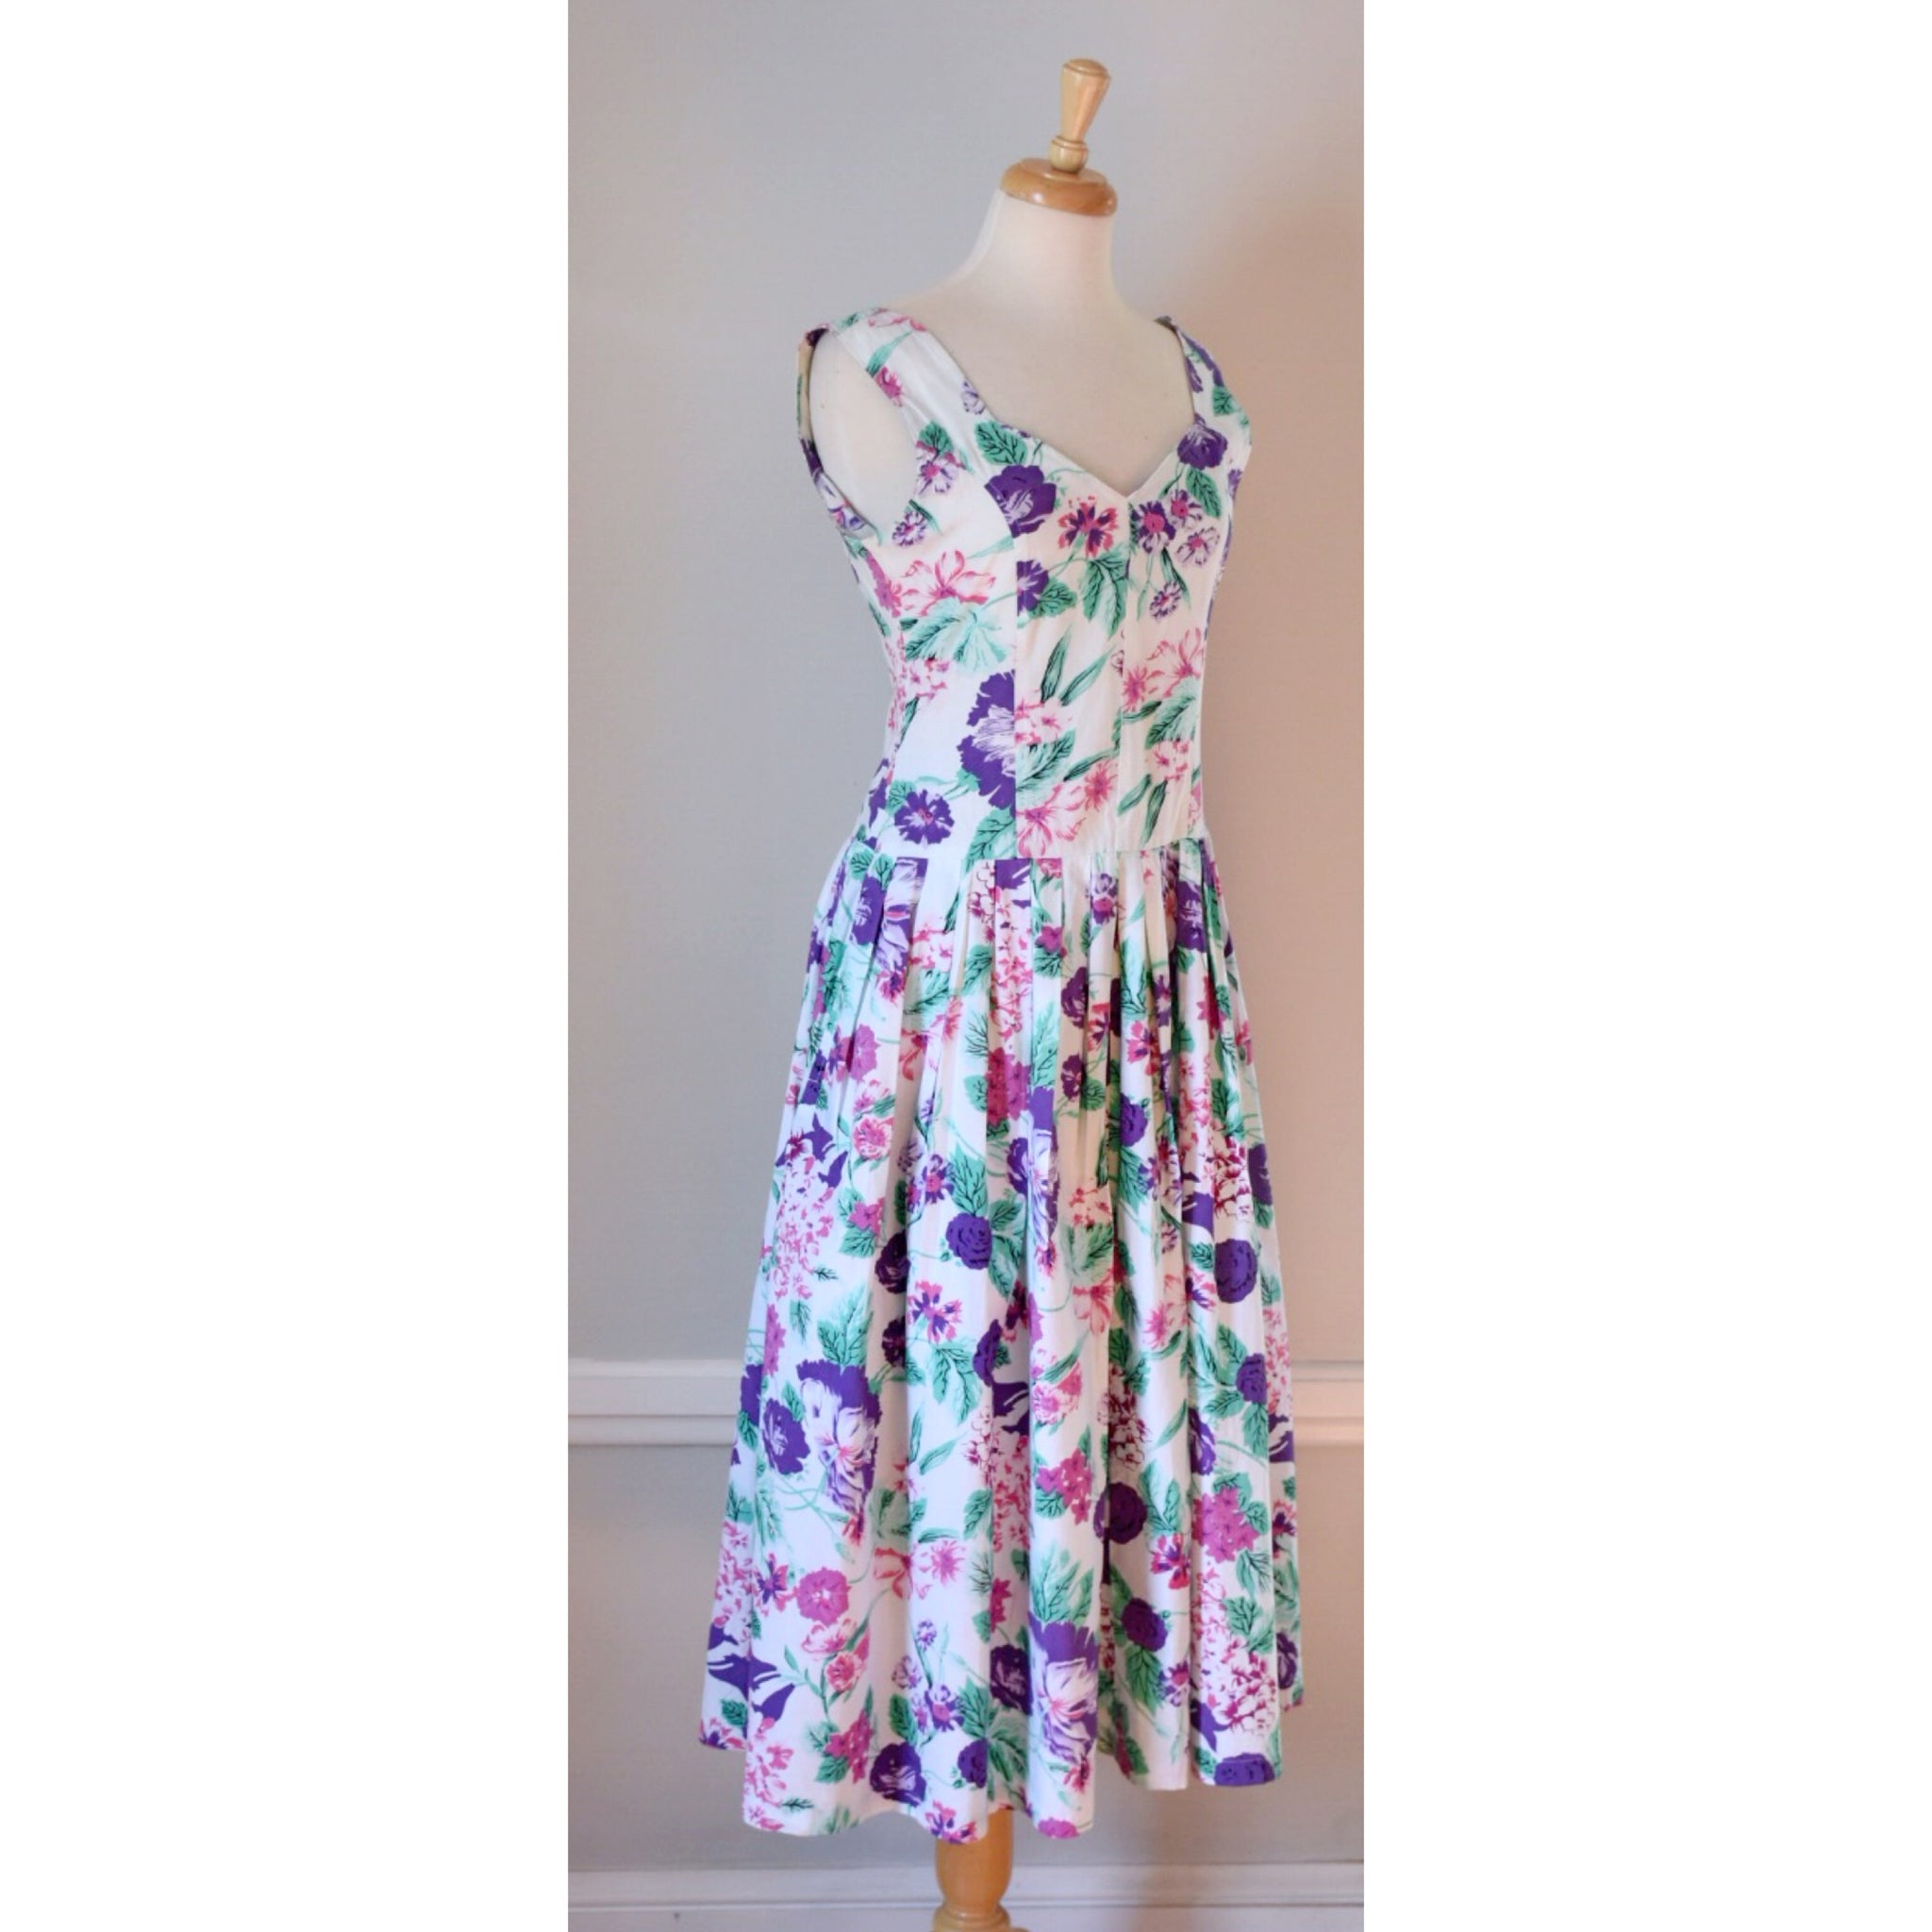 80s Vintage Cotton Dress